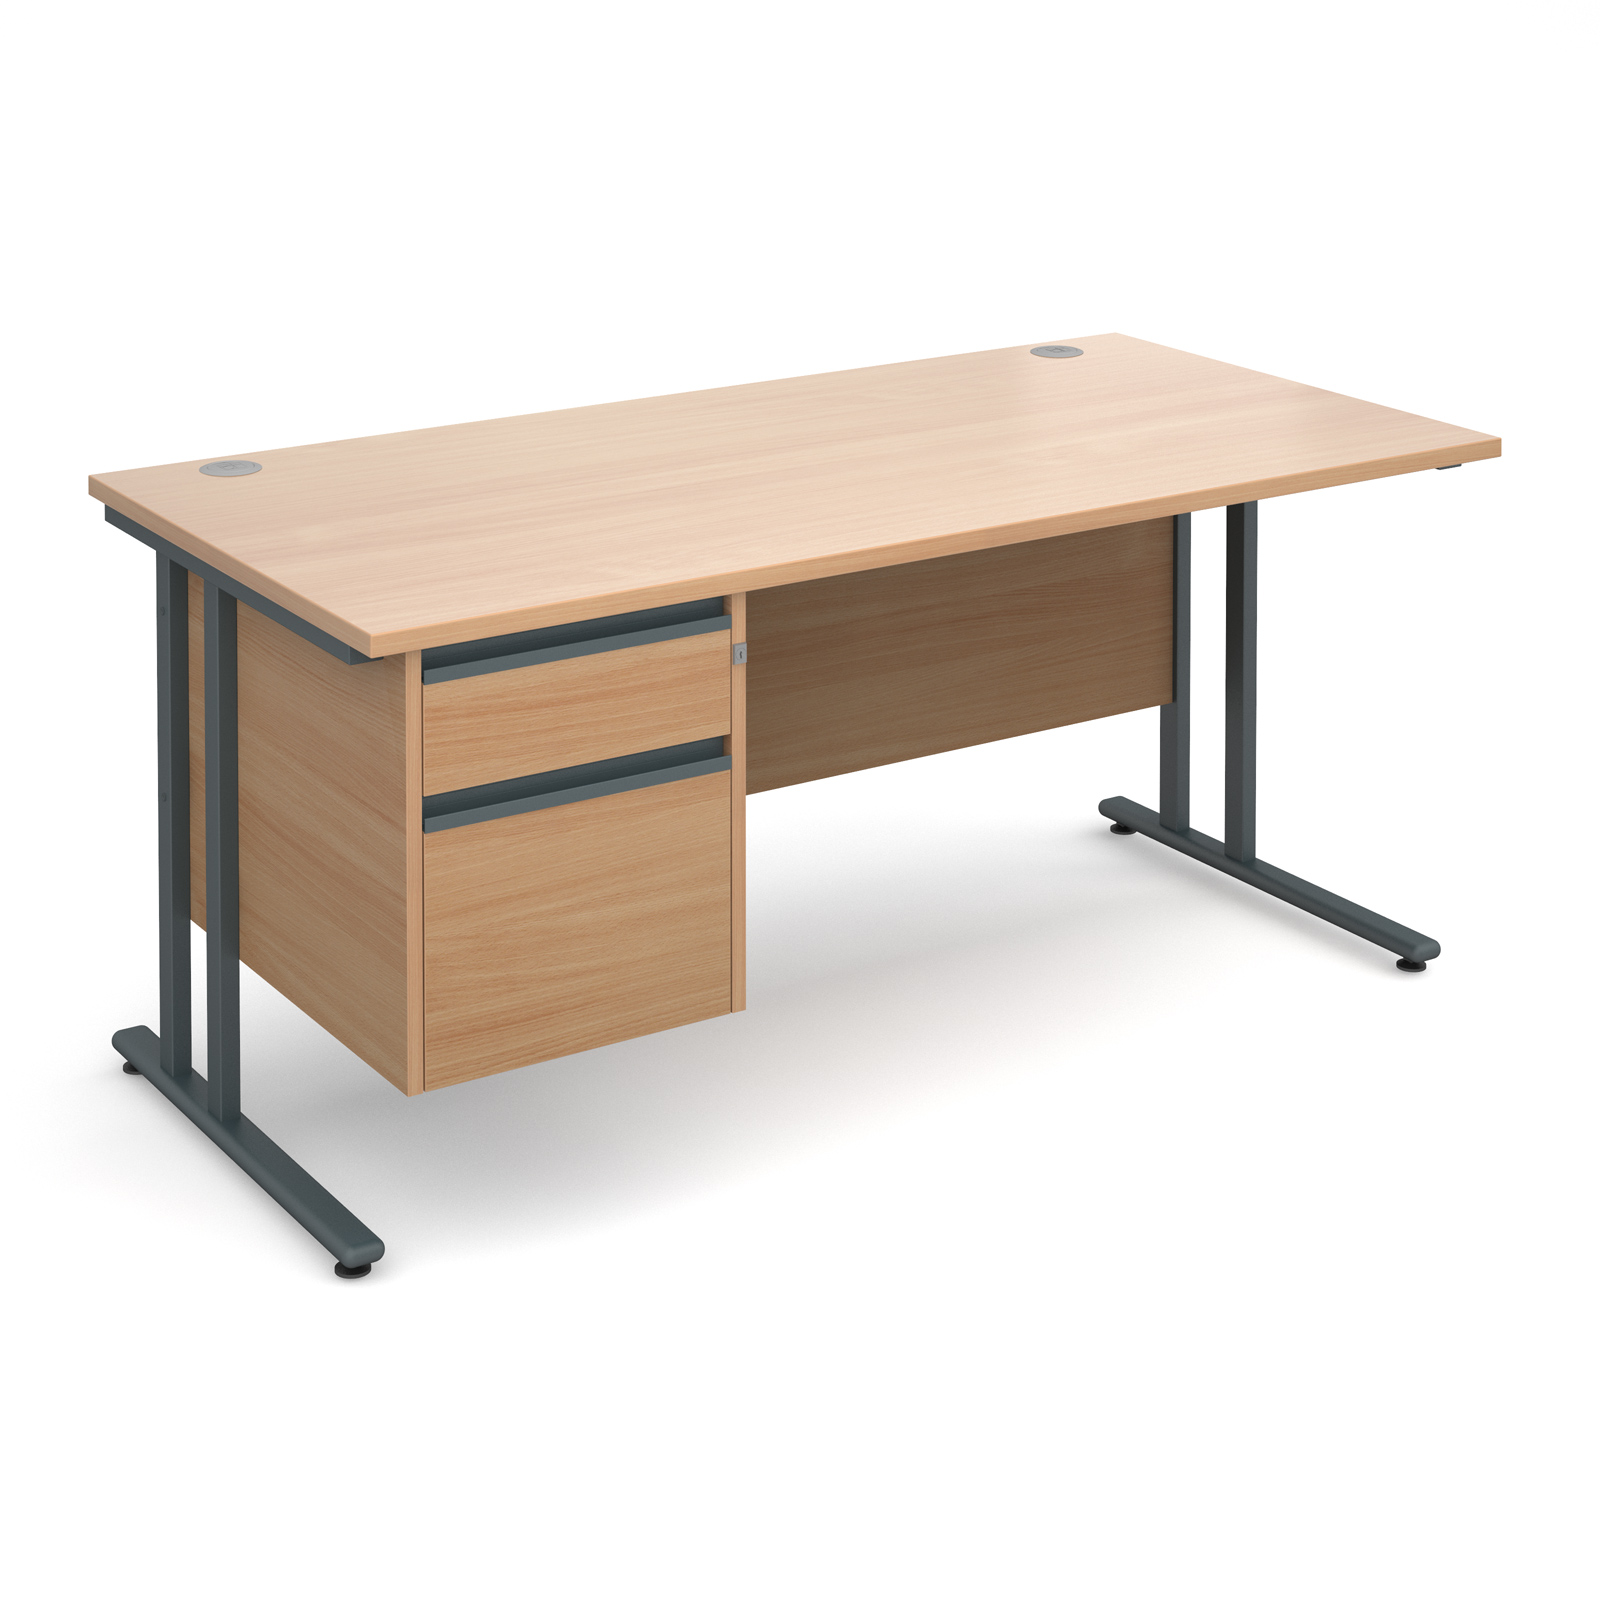 Maestro 25 Gl Straight Desk With 2 Drawer Pedestal 1600mm Graphite Cantilever Frame Beech Top